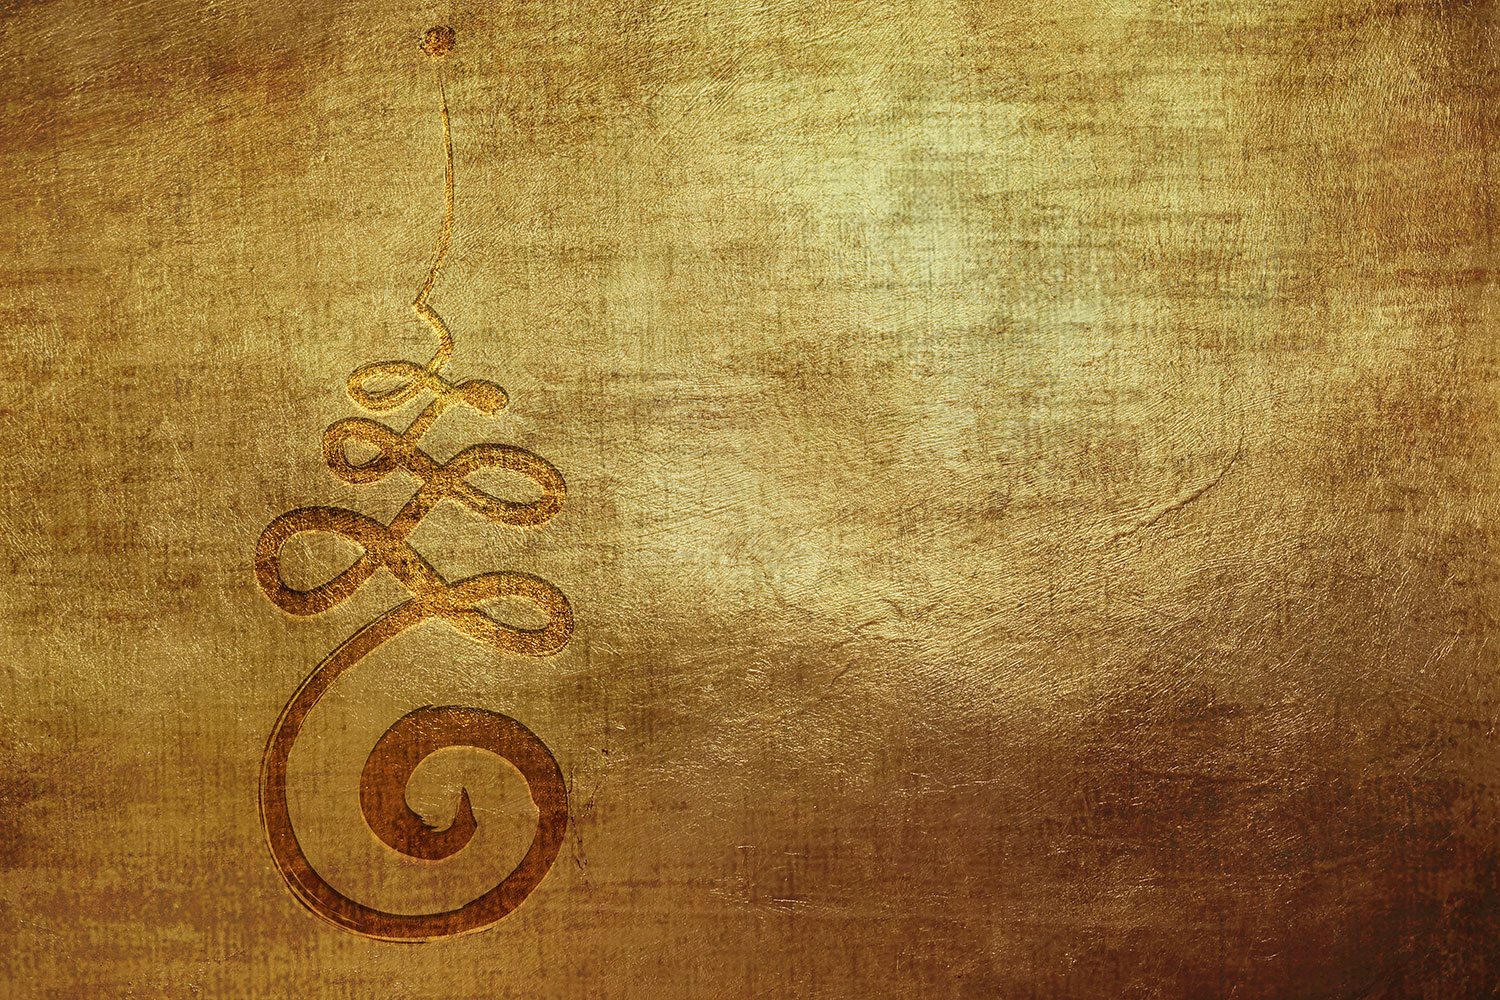 Unalome Meaning History Behind the Buddhist Symbol